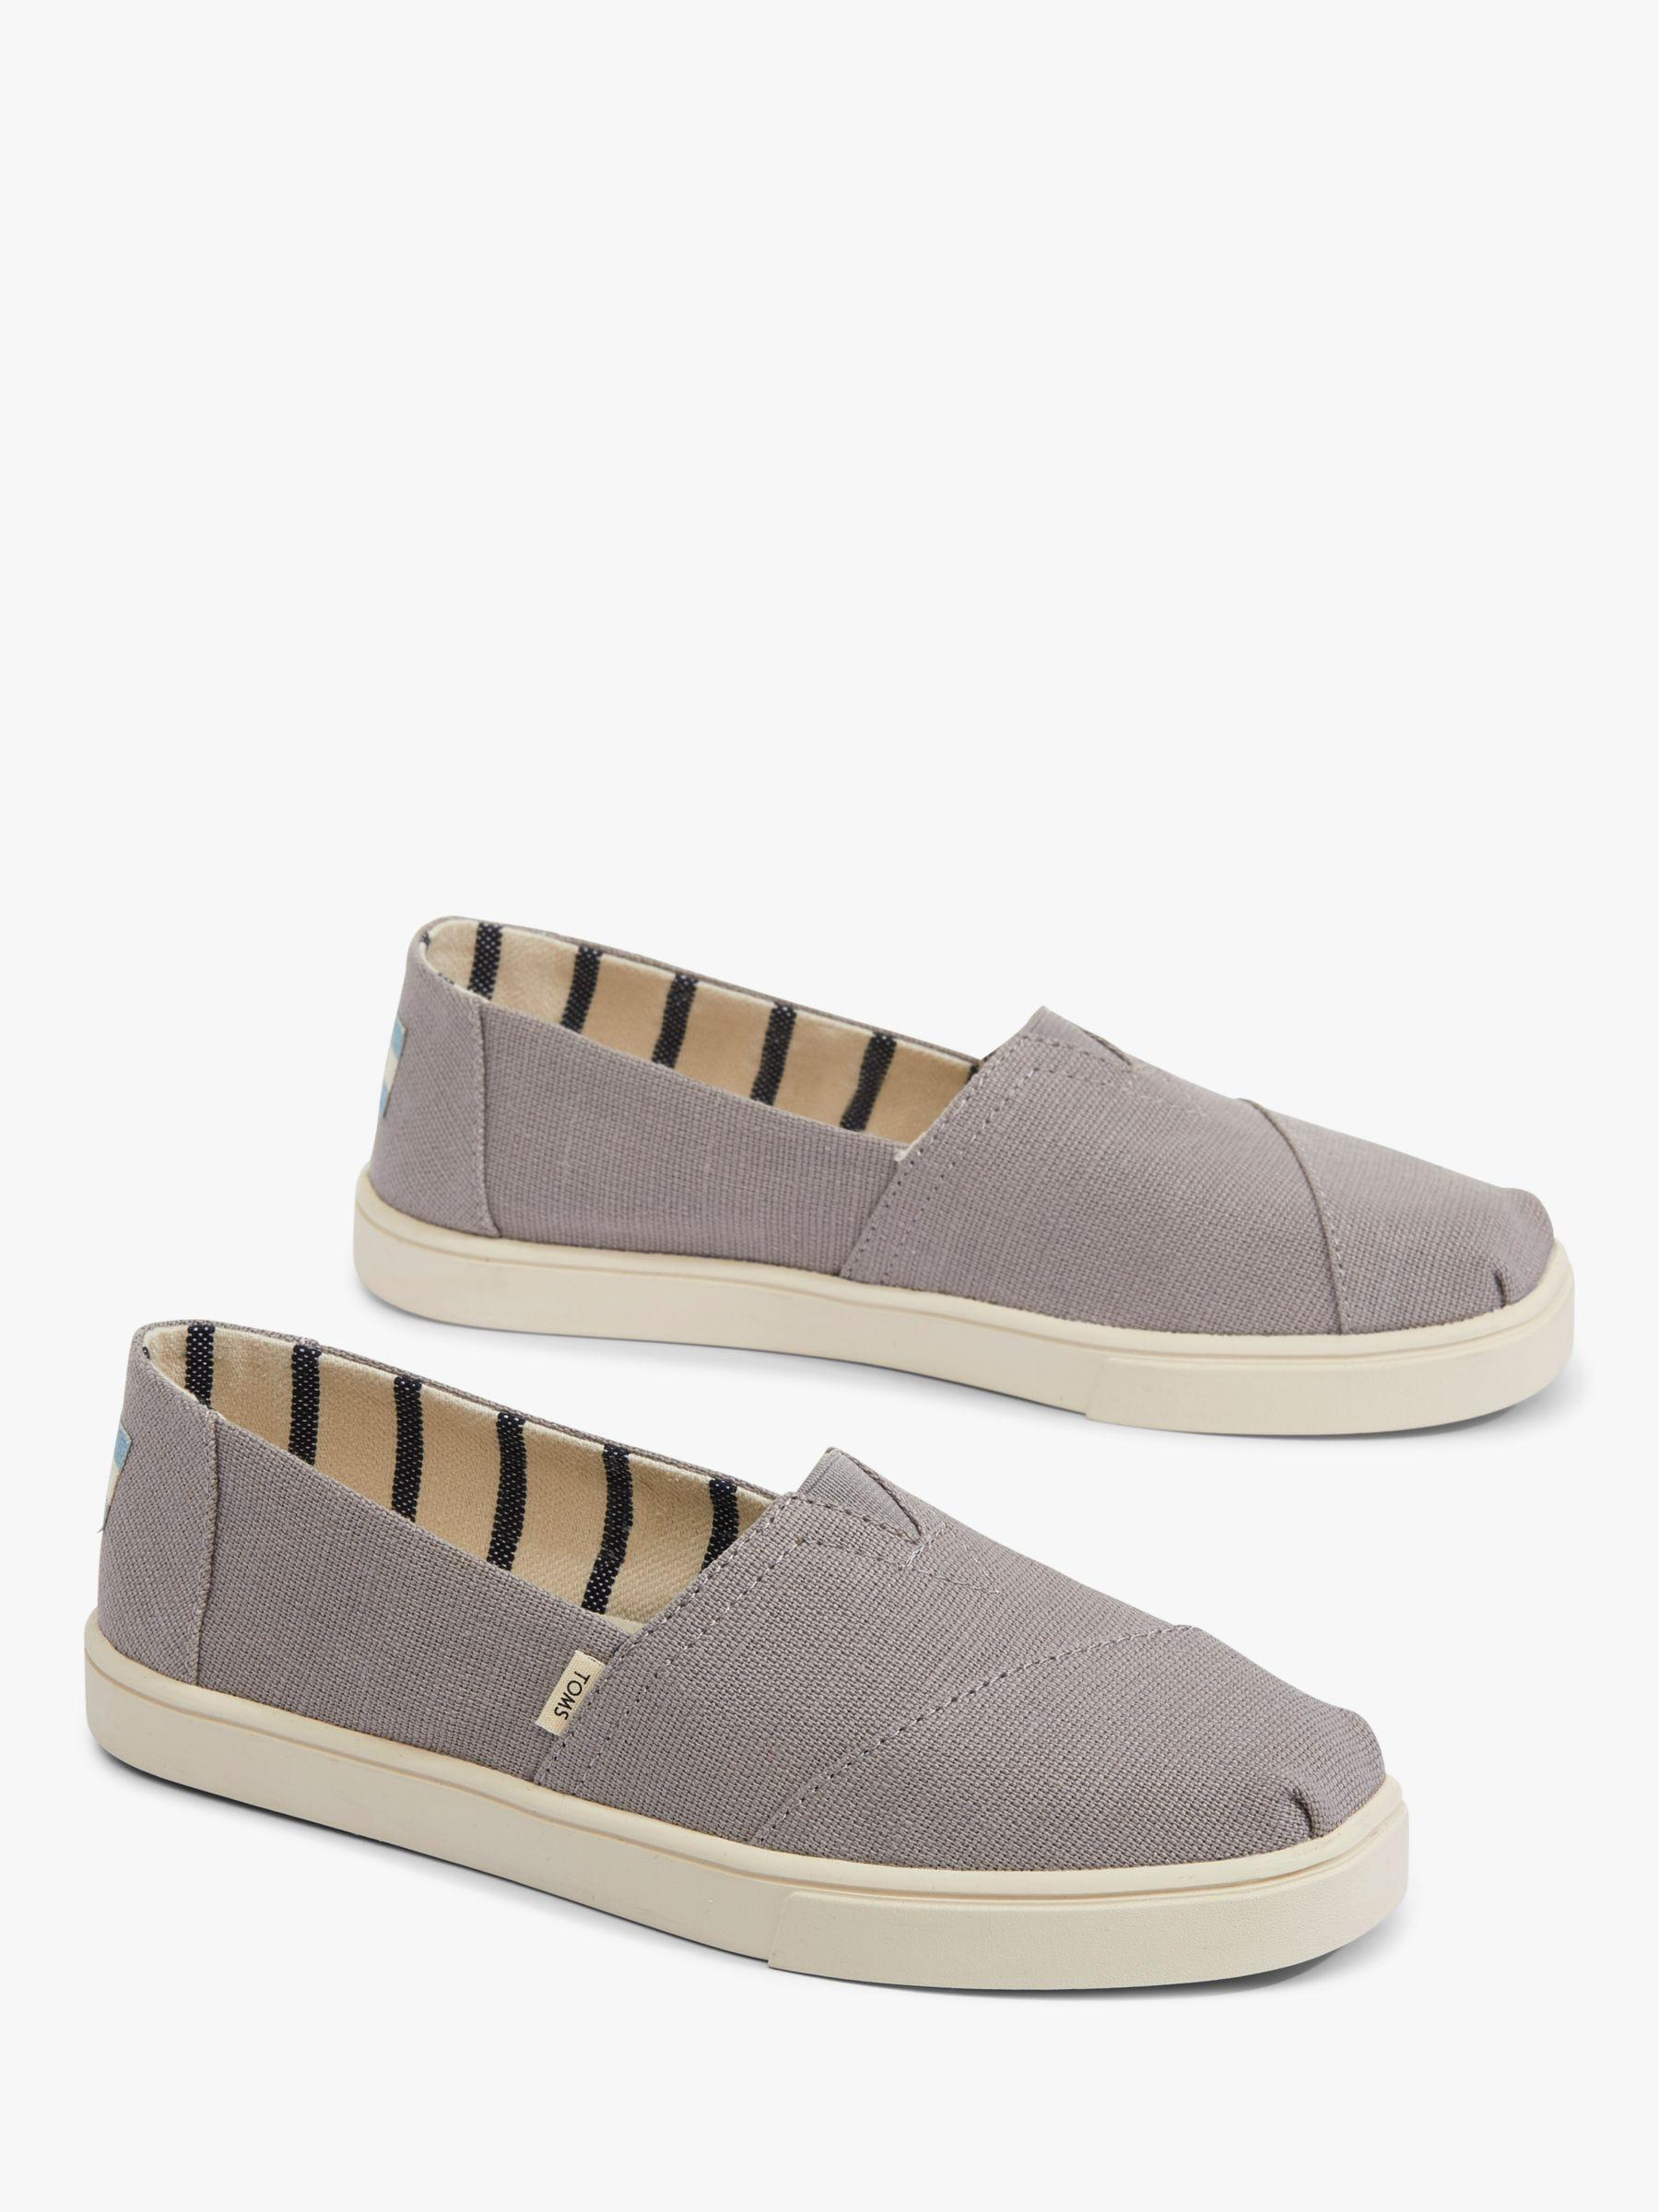 e3010871ee2 TOMS Alpargata Morning Canvas Espadrilles in Gray - Lyst